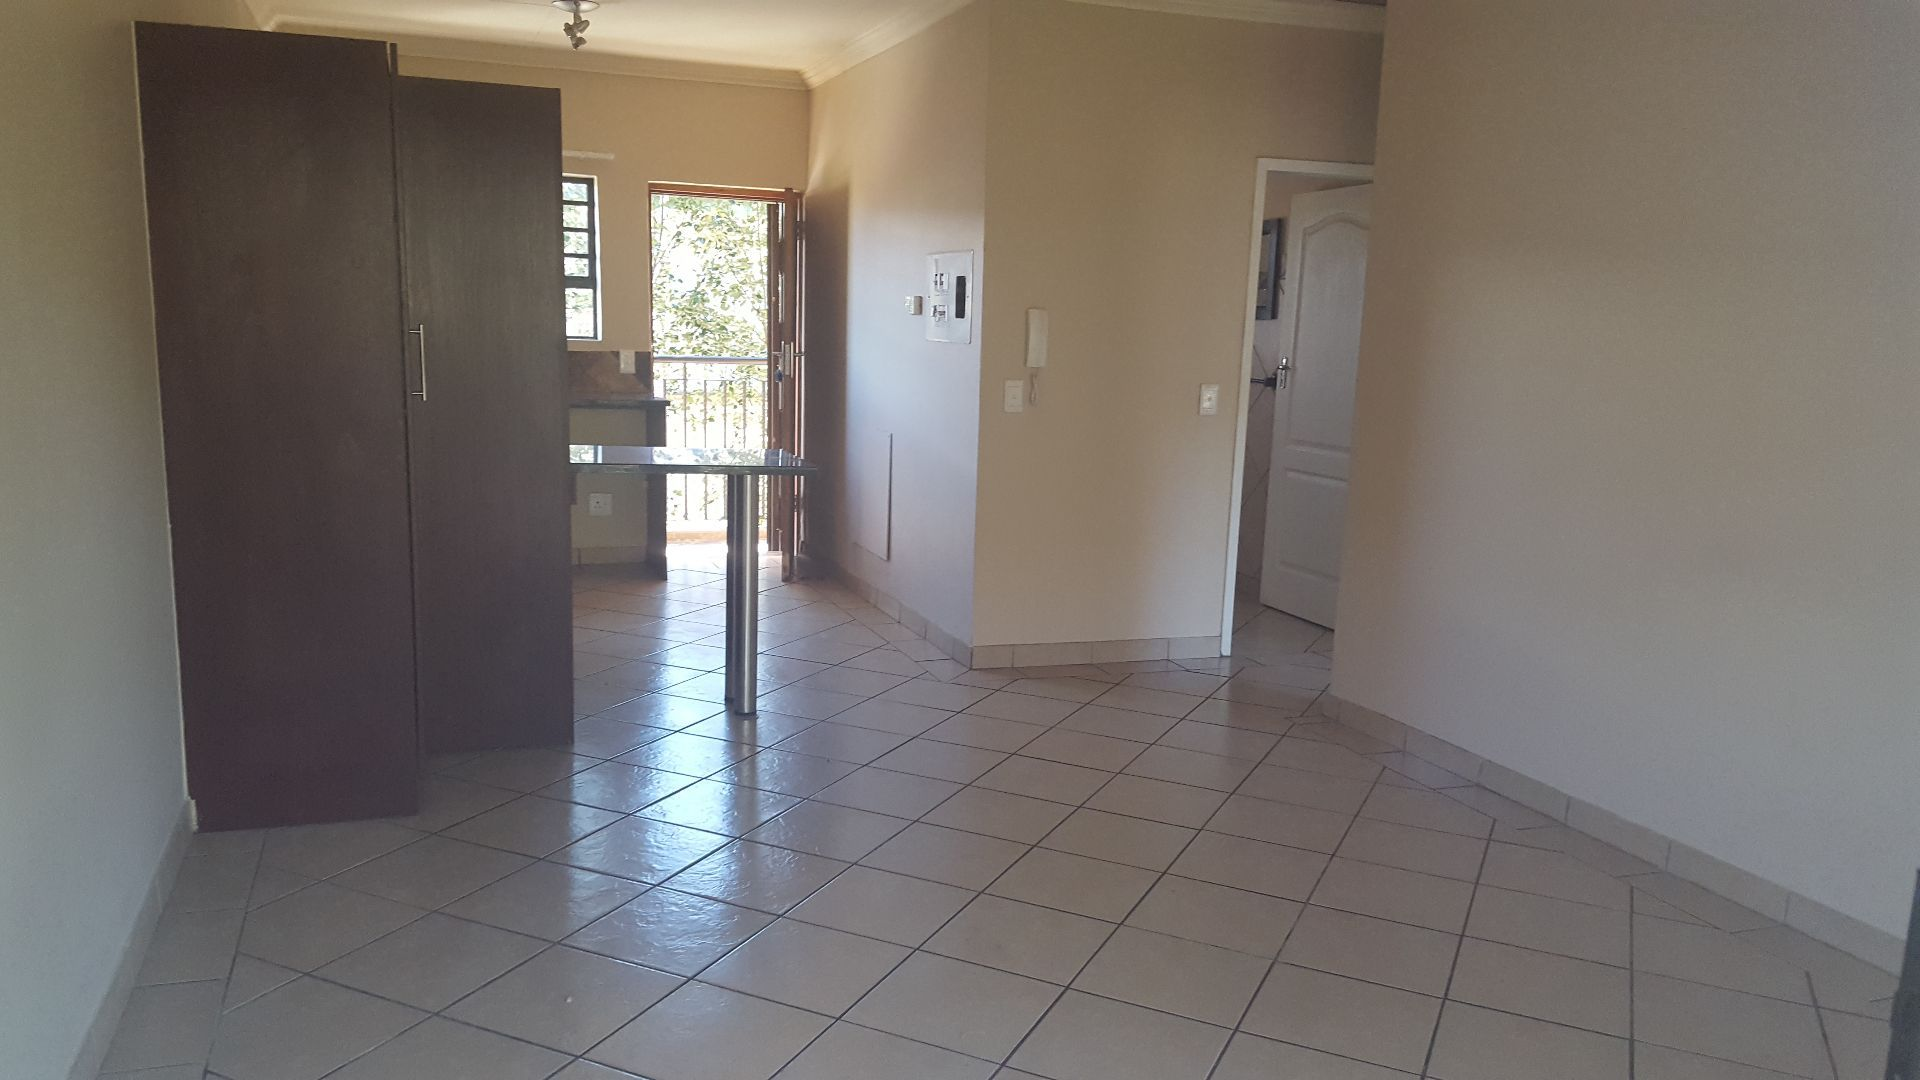 Potchefstroom Central property for sale. Ref No: 13514573. Picture no 11